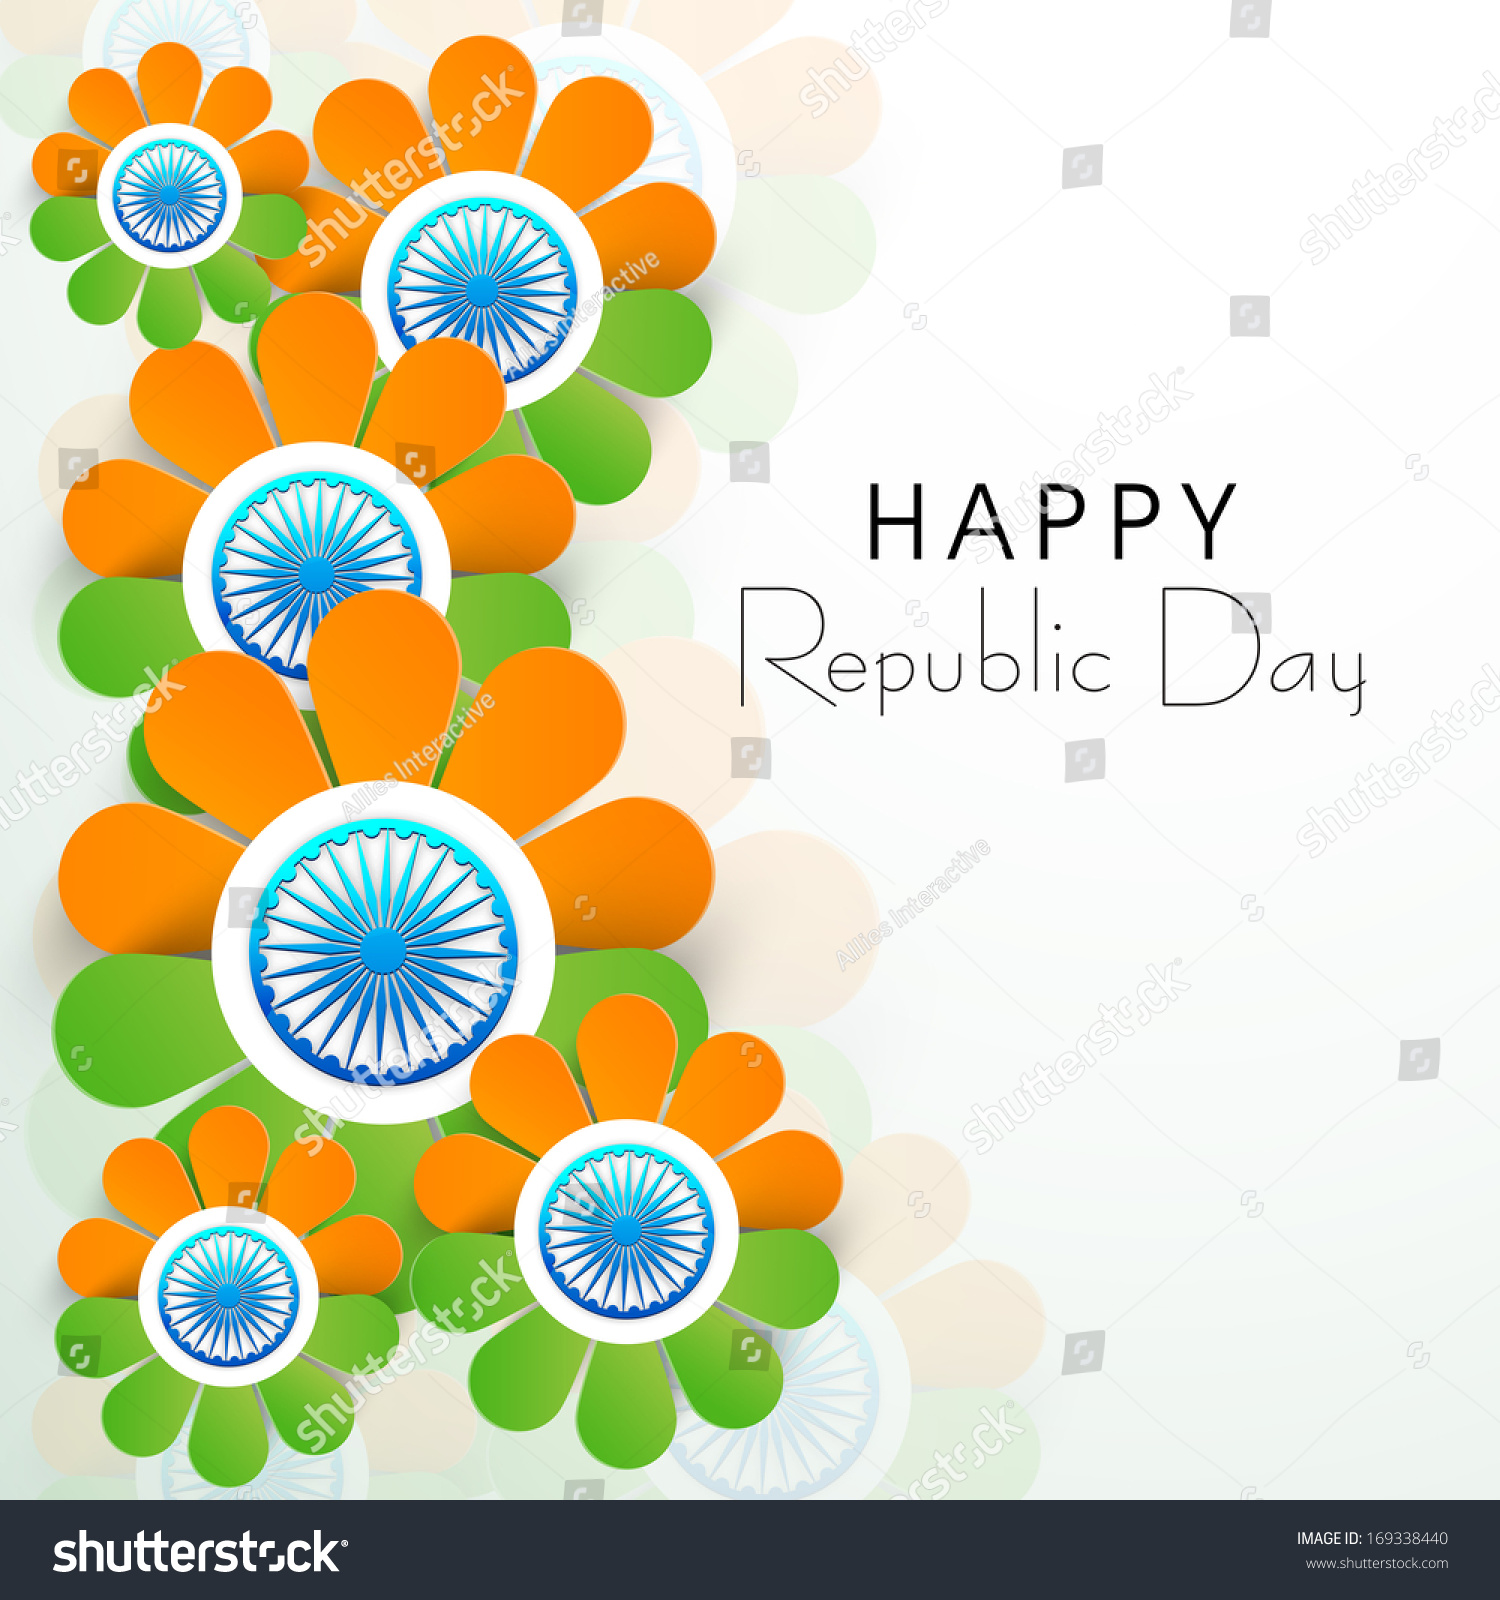 Colors website ashoka - Happy Indian Republic Day Concept With Beautiful Flowers In National Flag Colors With Ashoka Wheel On